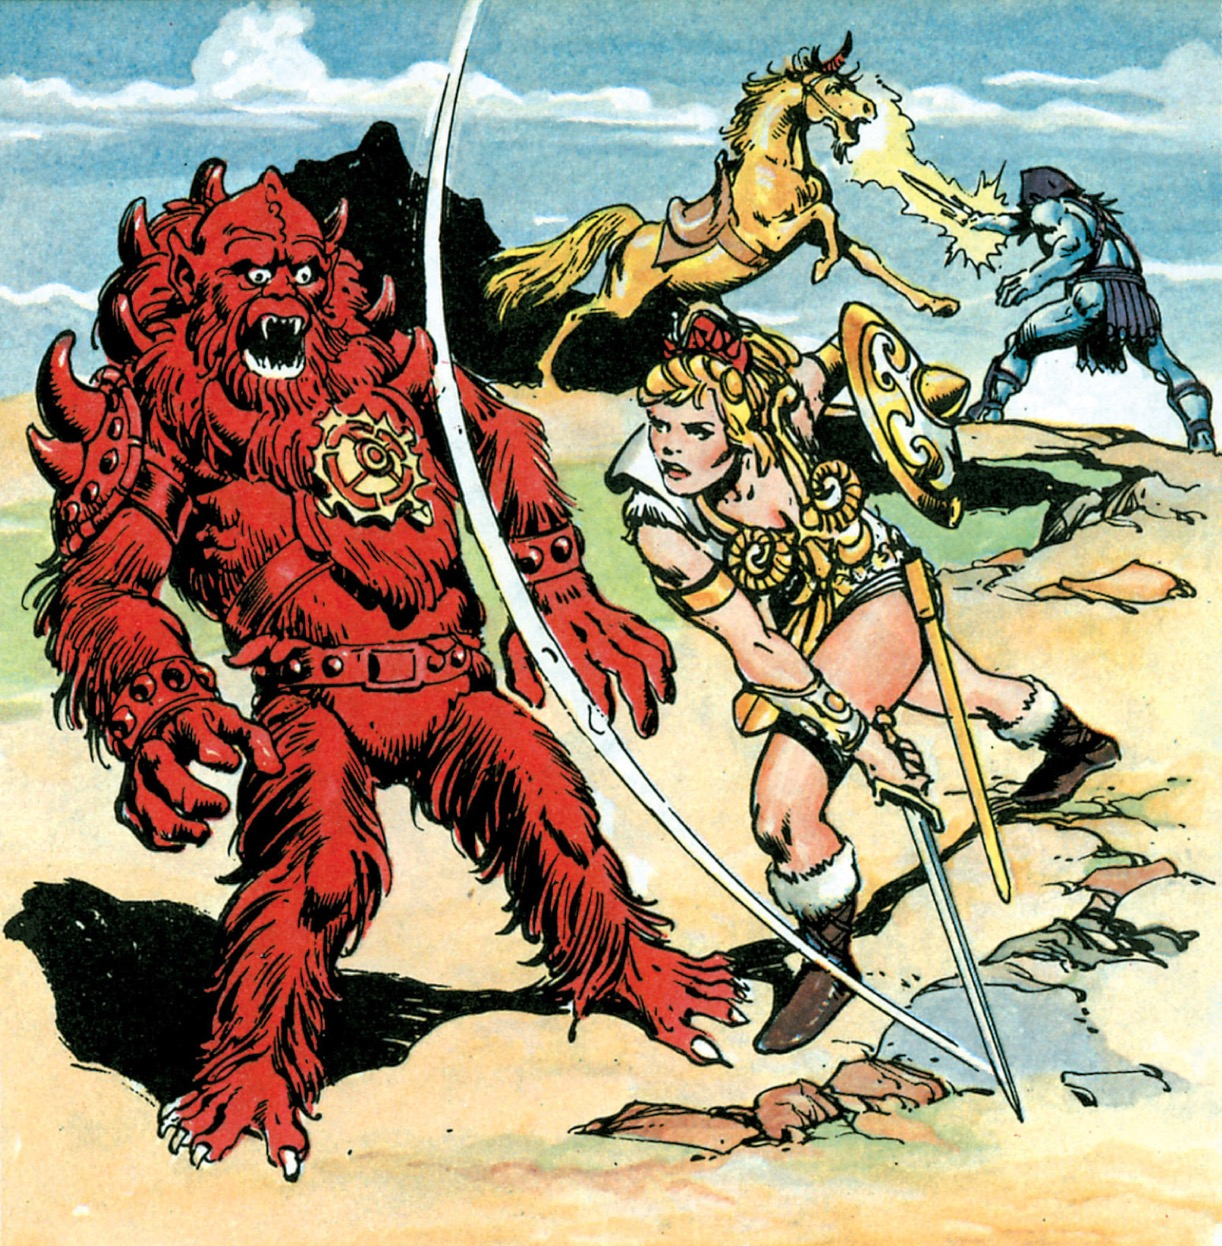 Teela the Warrior-Godess v, Beastman plus Skeletor vs Unicorn. Who will win?